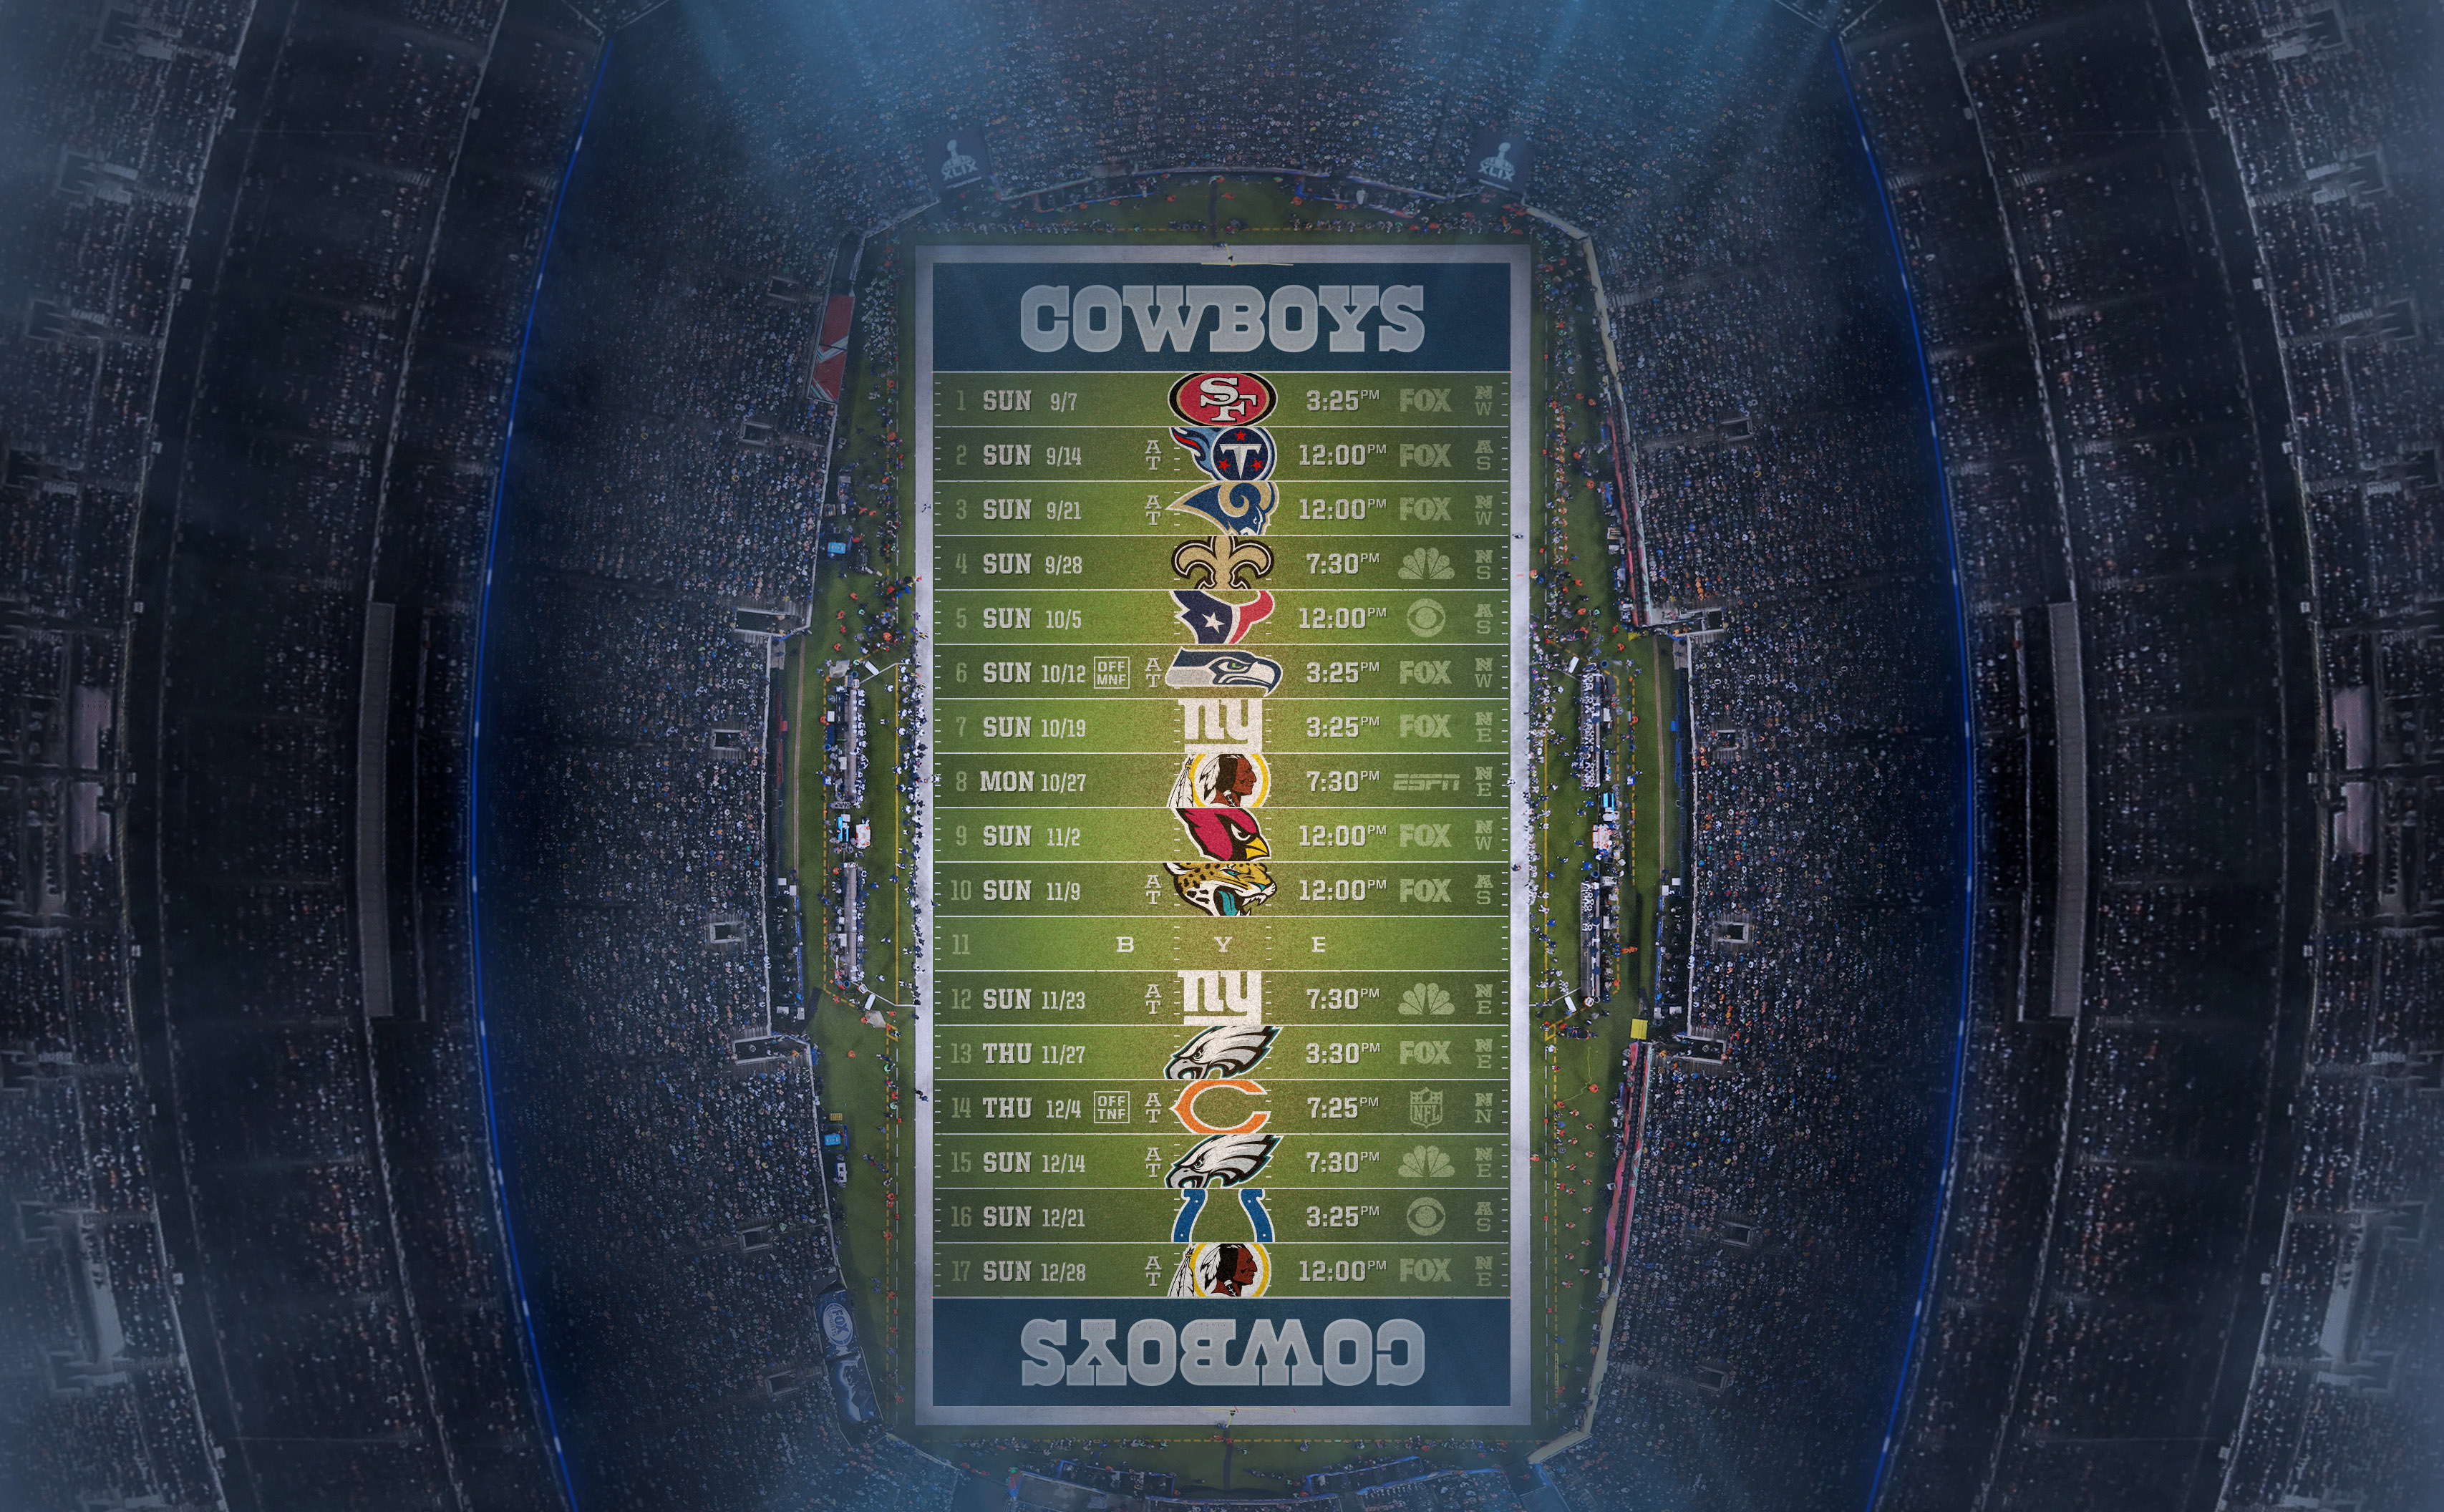 Dallas Cowboys Wallpaper 2014 Players cowboys 2015 schedule wallpaper 3414x2112